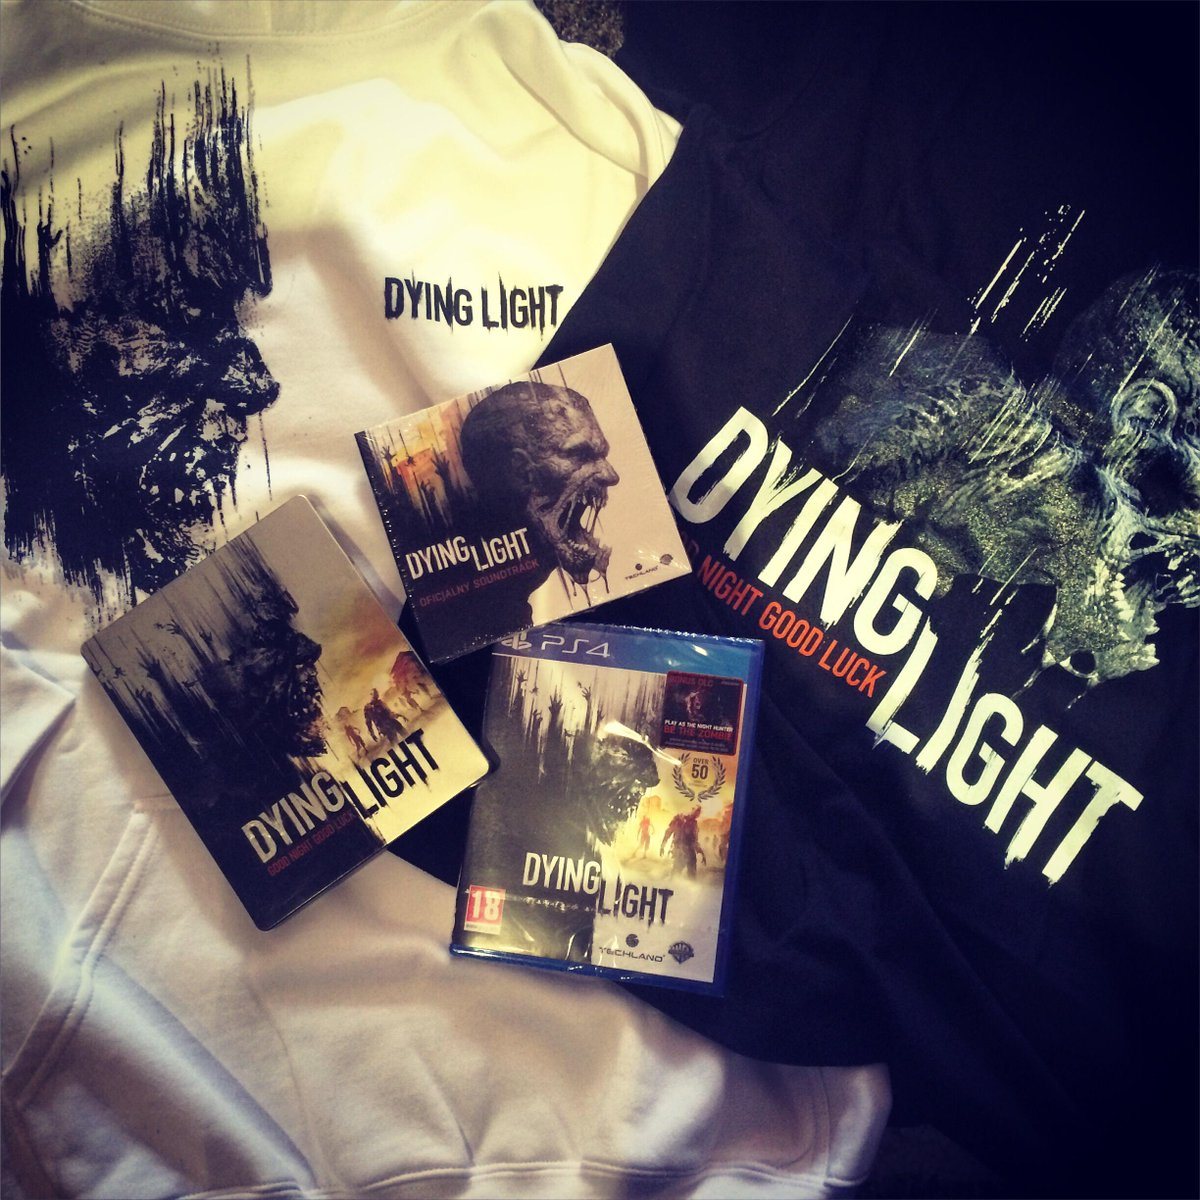 Finally get to play digital me in #DyingLight thanks to the good people @DyingLightGame   #GoodNightGoodLuck